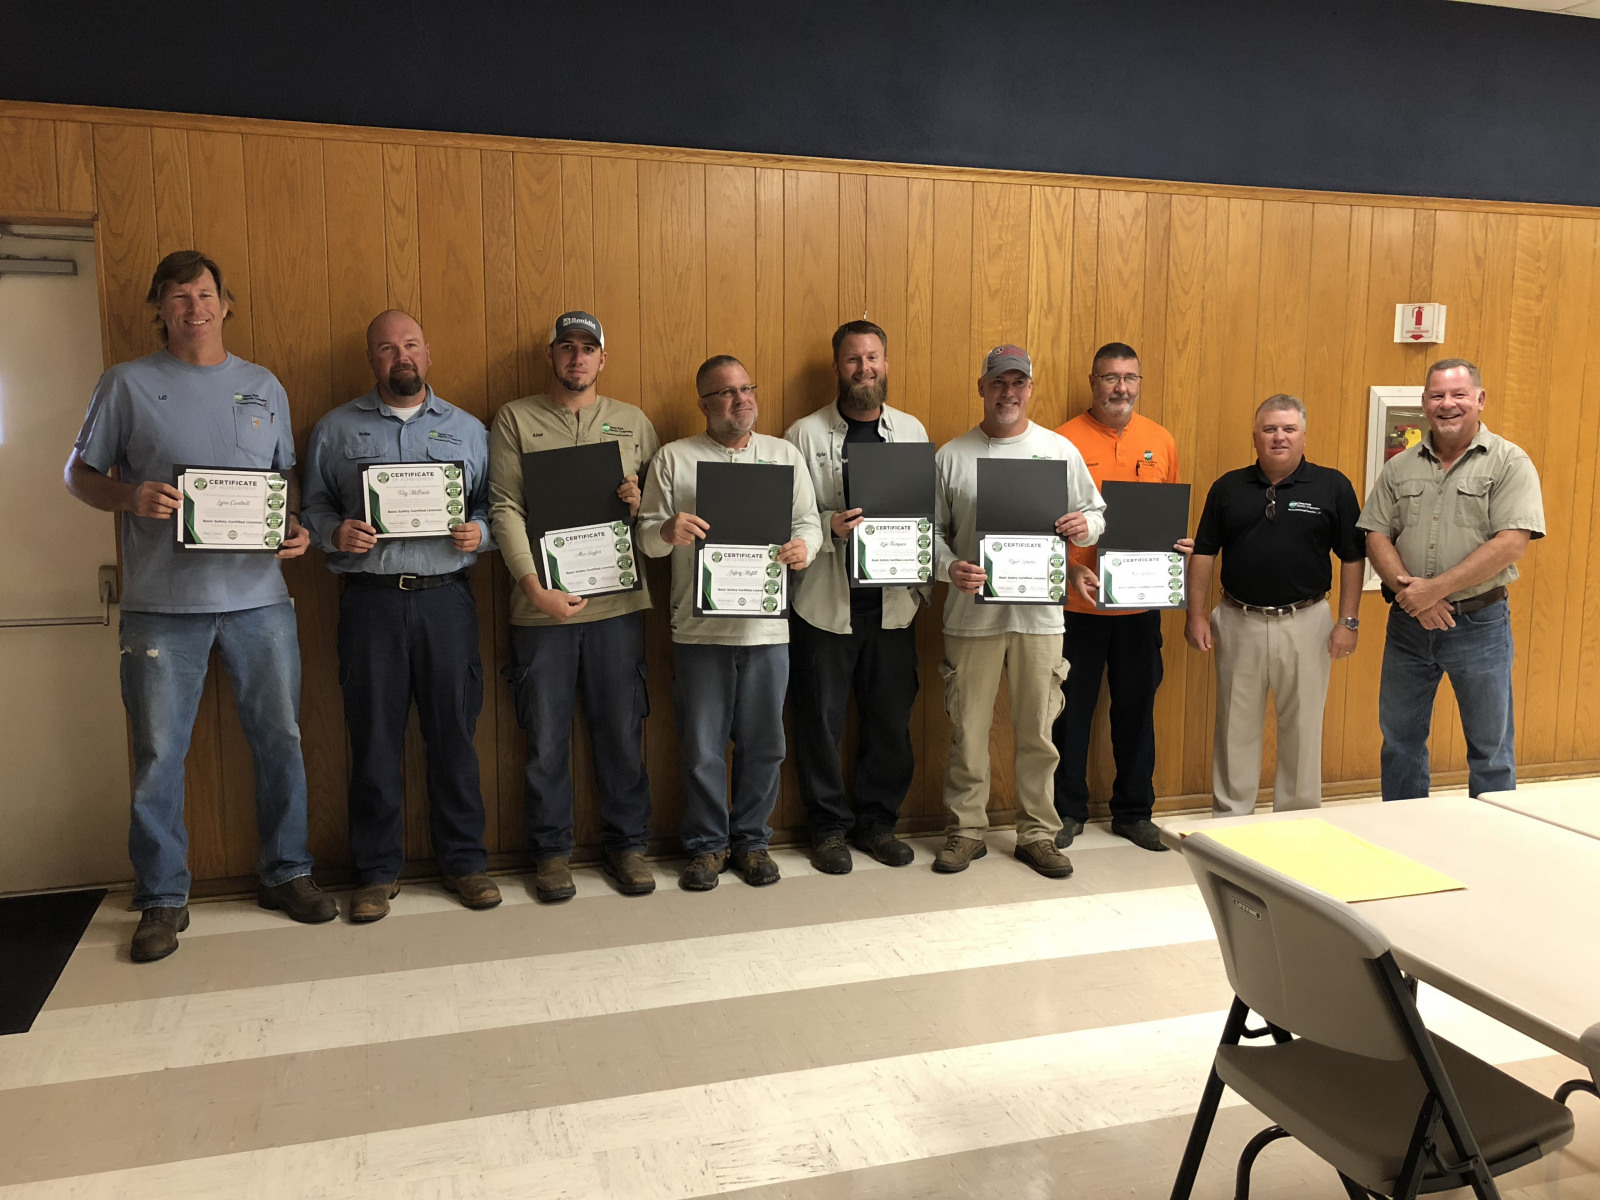 2018 Basic SCL Recipients Lynn Cantrell, Toby McBride, Alex Saylor, Jeffery Moffitt, Kyle Thompson,  Ryan Lorance, and Alan Watson with Caney Fork Electric Cooperative